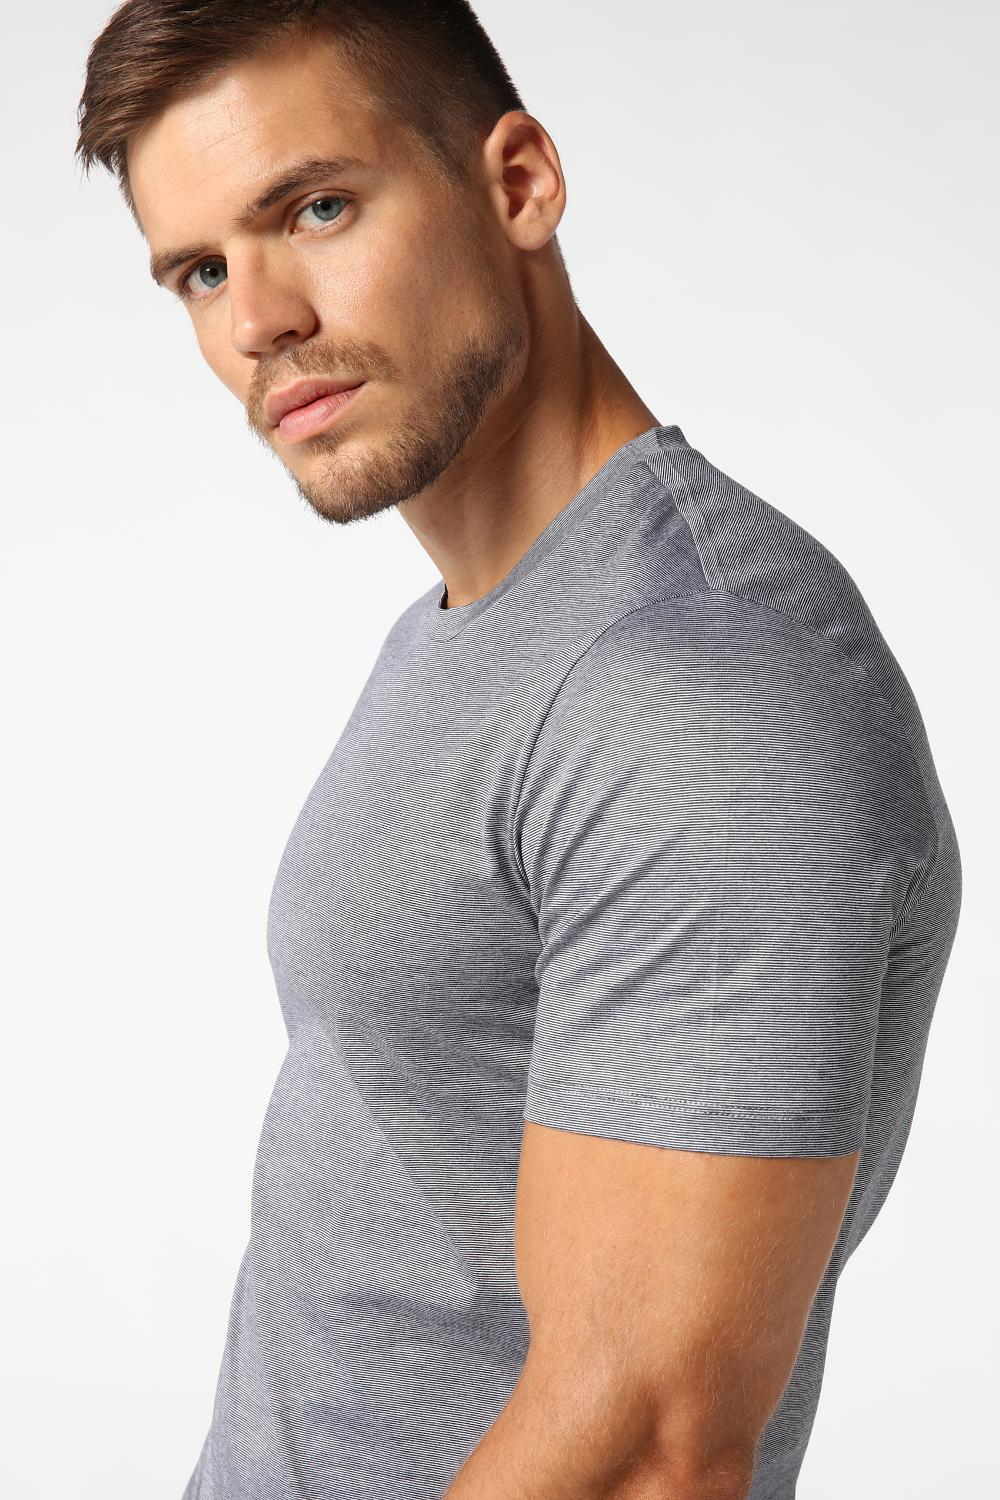 Pinstripe Lisle-Yarn Top with Short Sleeves